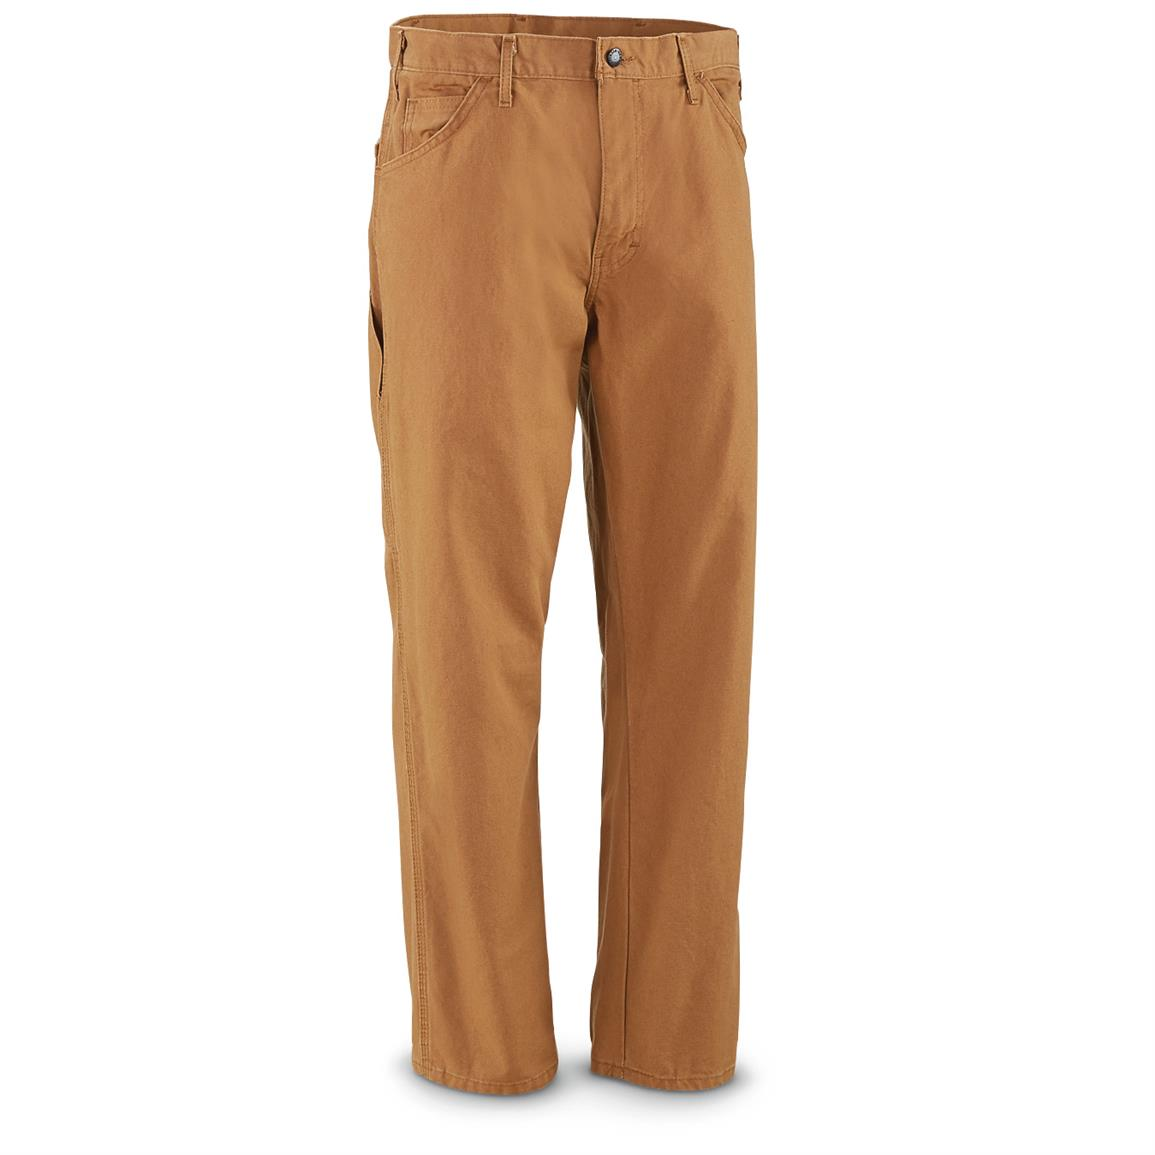 Dickies Men's Duck Utility Carpenter Pants, Slight Irregulars, Brown